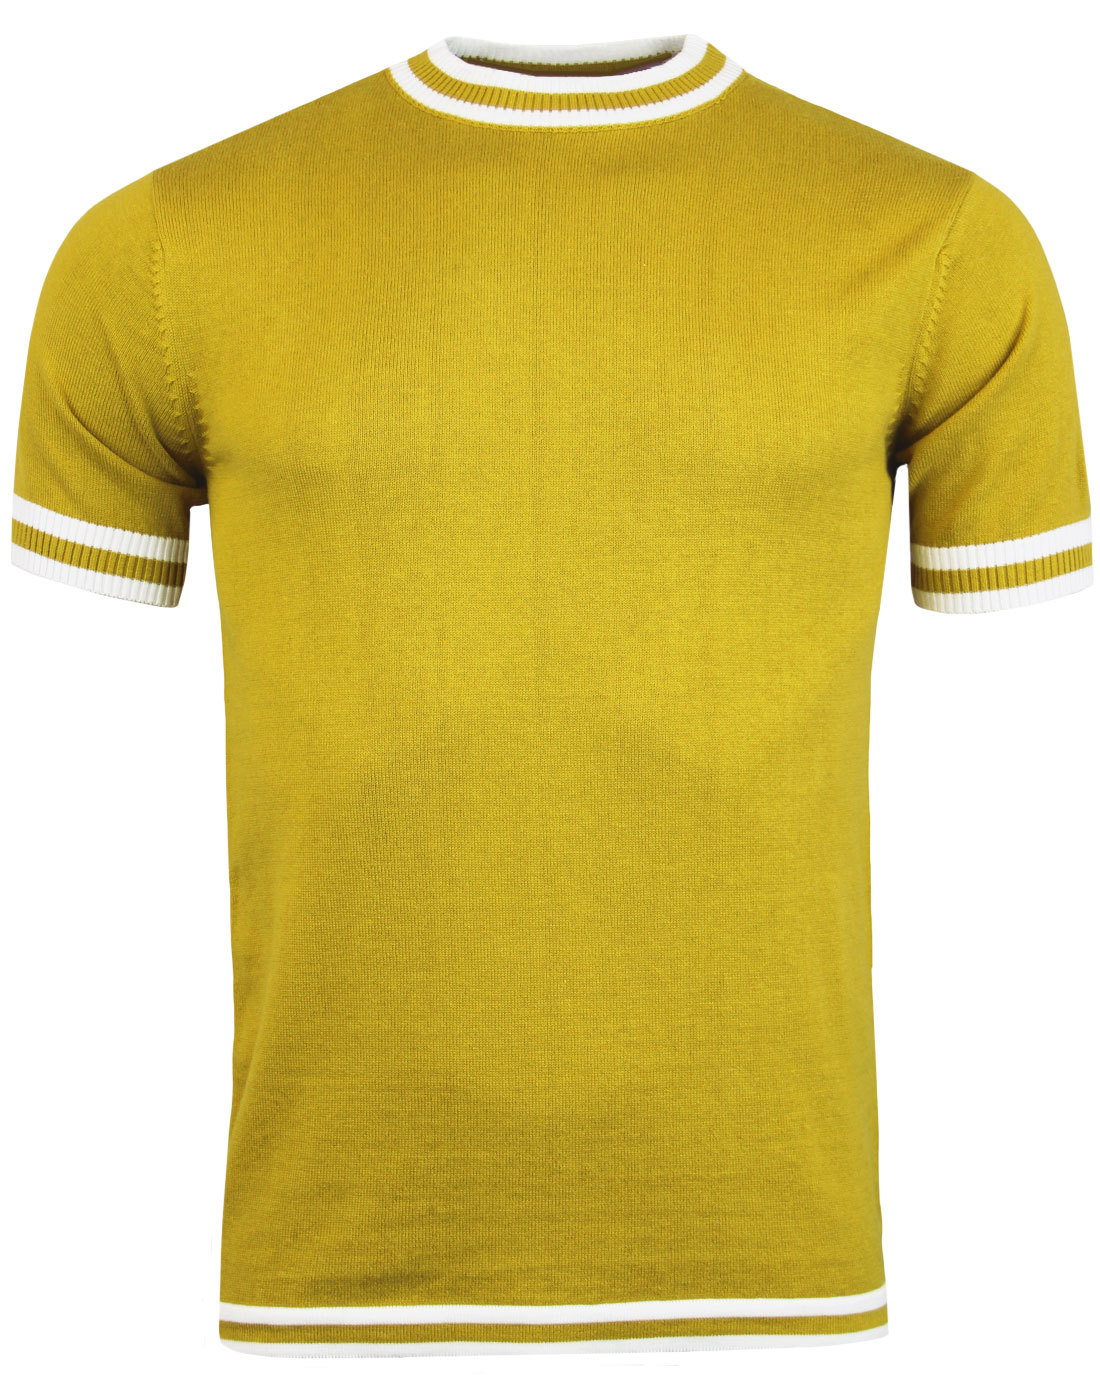 madcap england moon 60s mod tipped knit tee honey